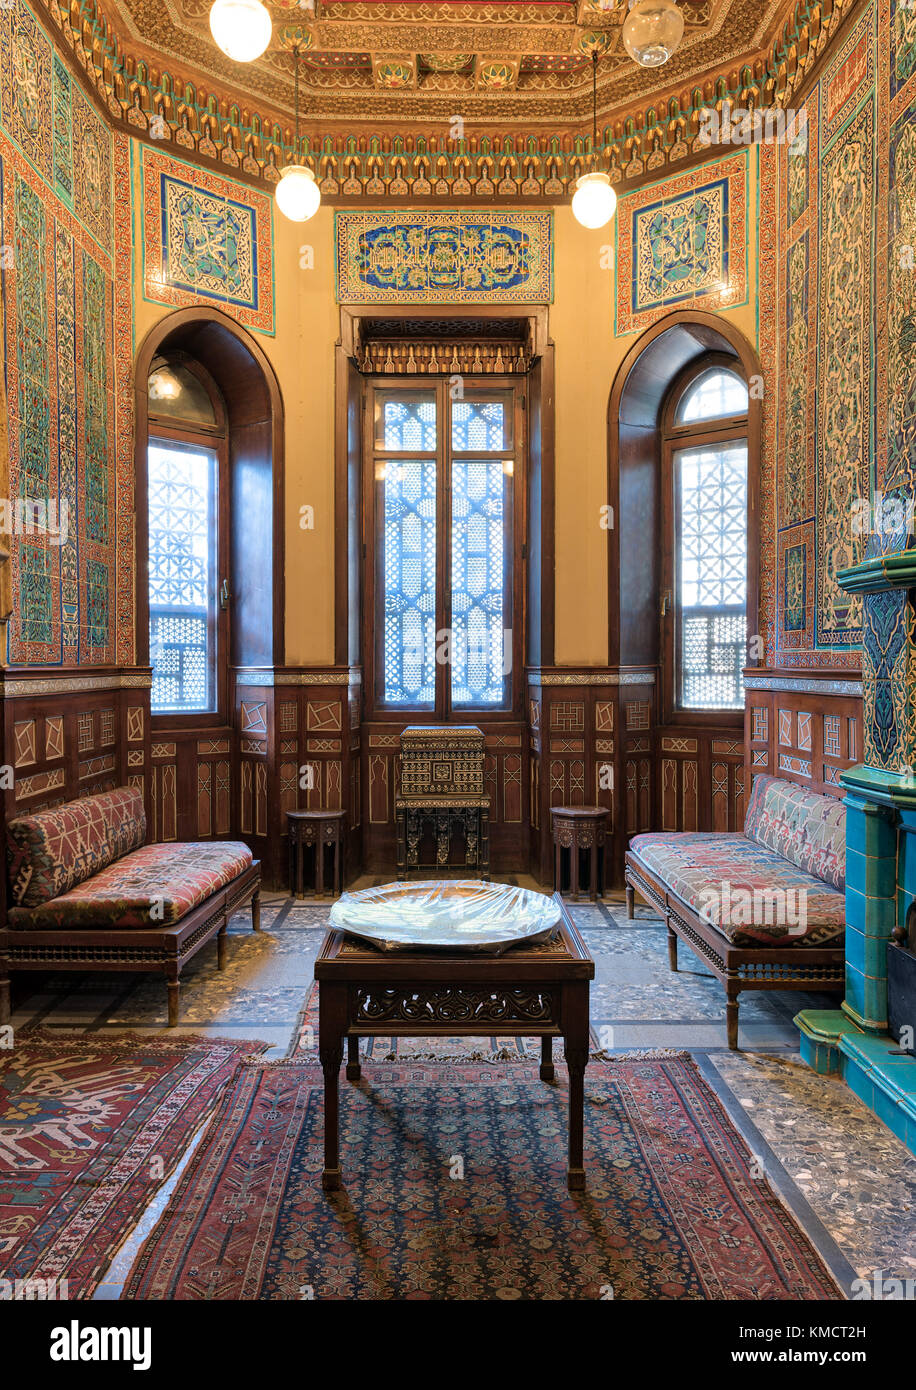 Cairo, Egypt - December 2 2017: Manial Palace of Prince Mohammed Ali. Winter room at the Residence Hall, with ornate - Stock Image